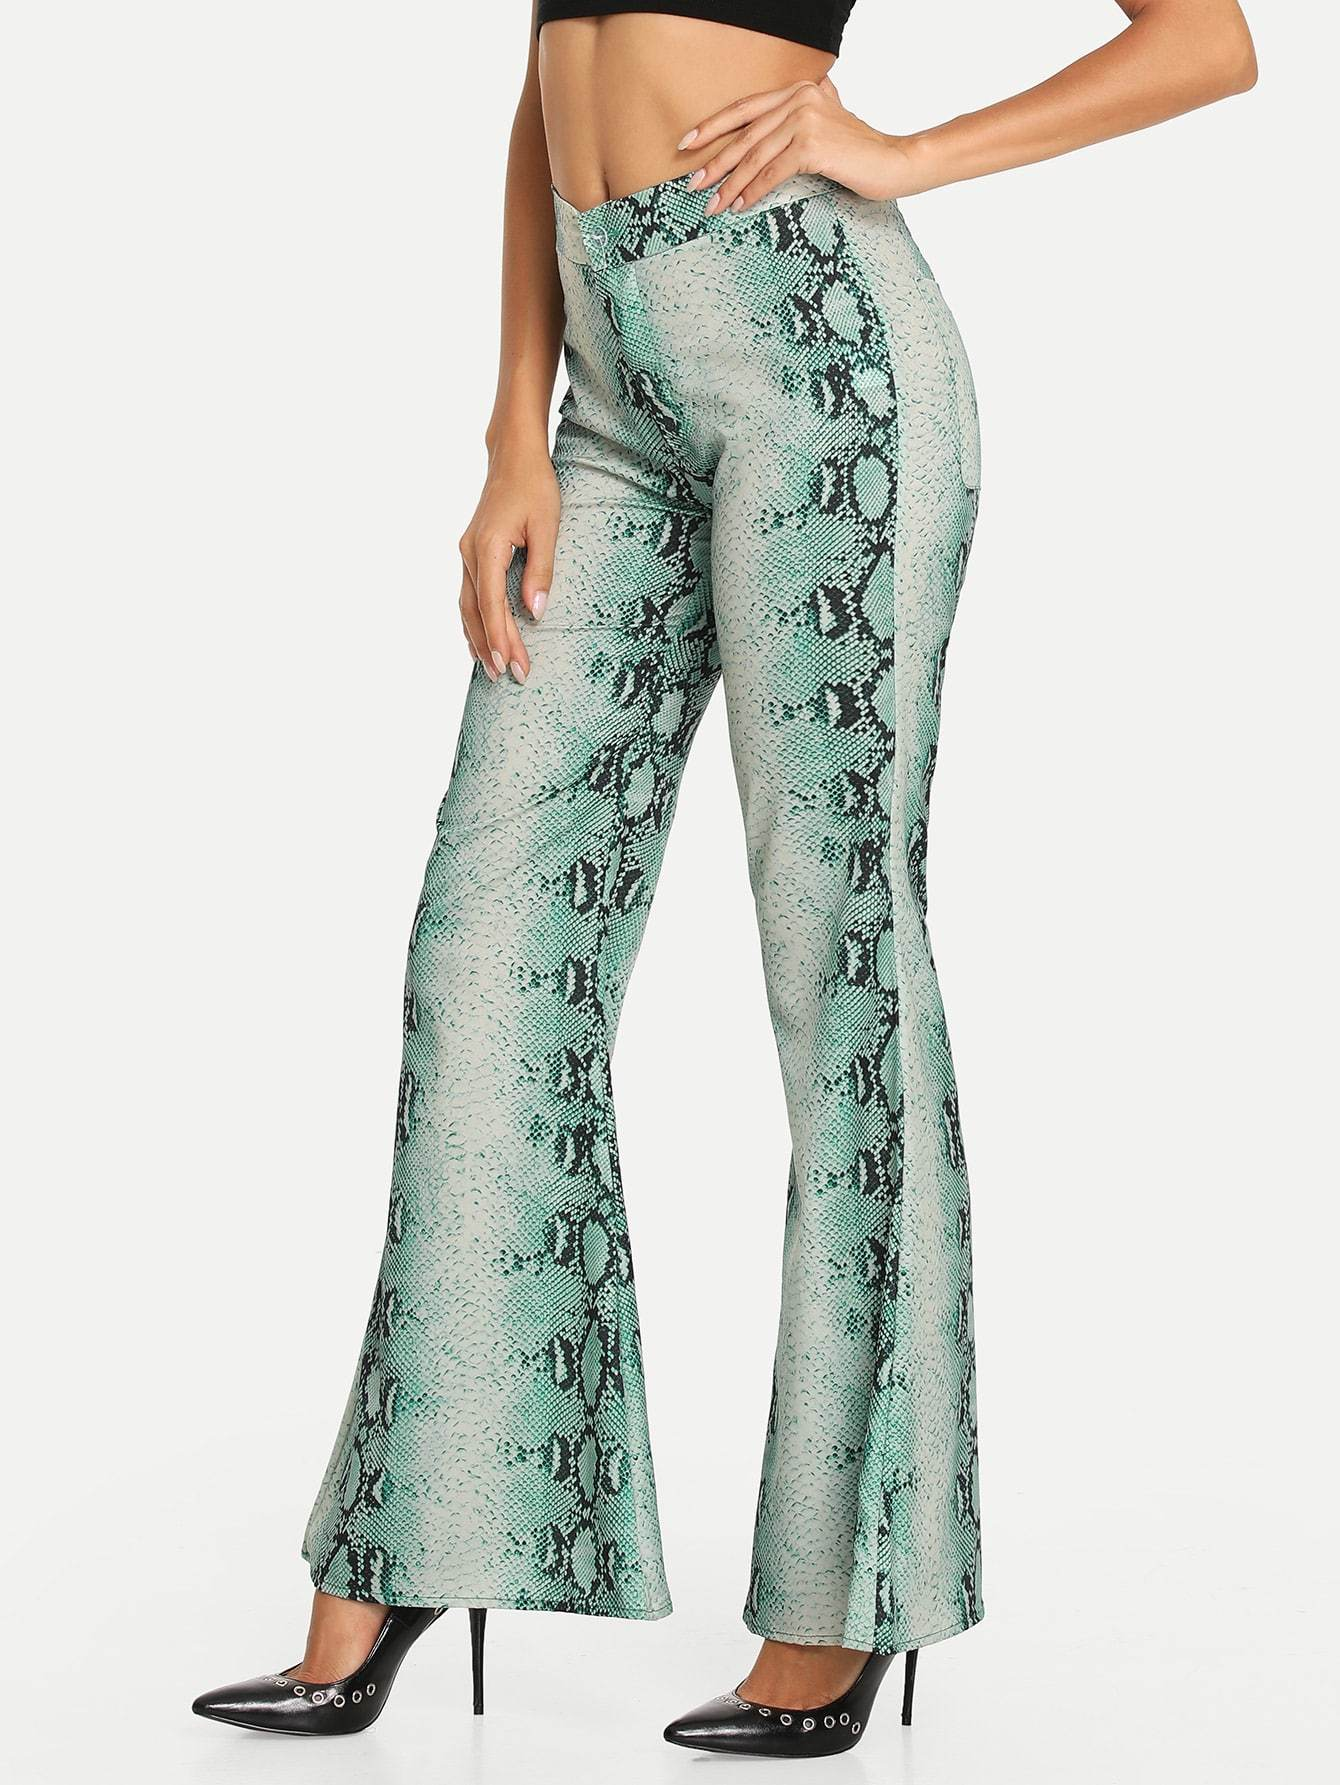 Snakeskin Flared Pants